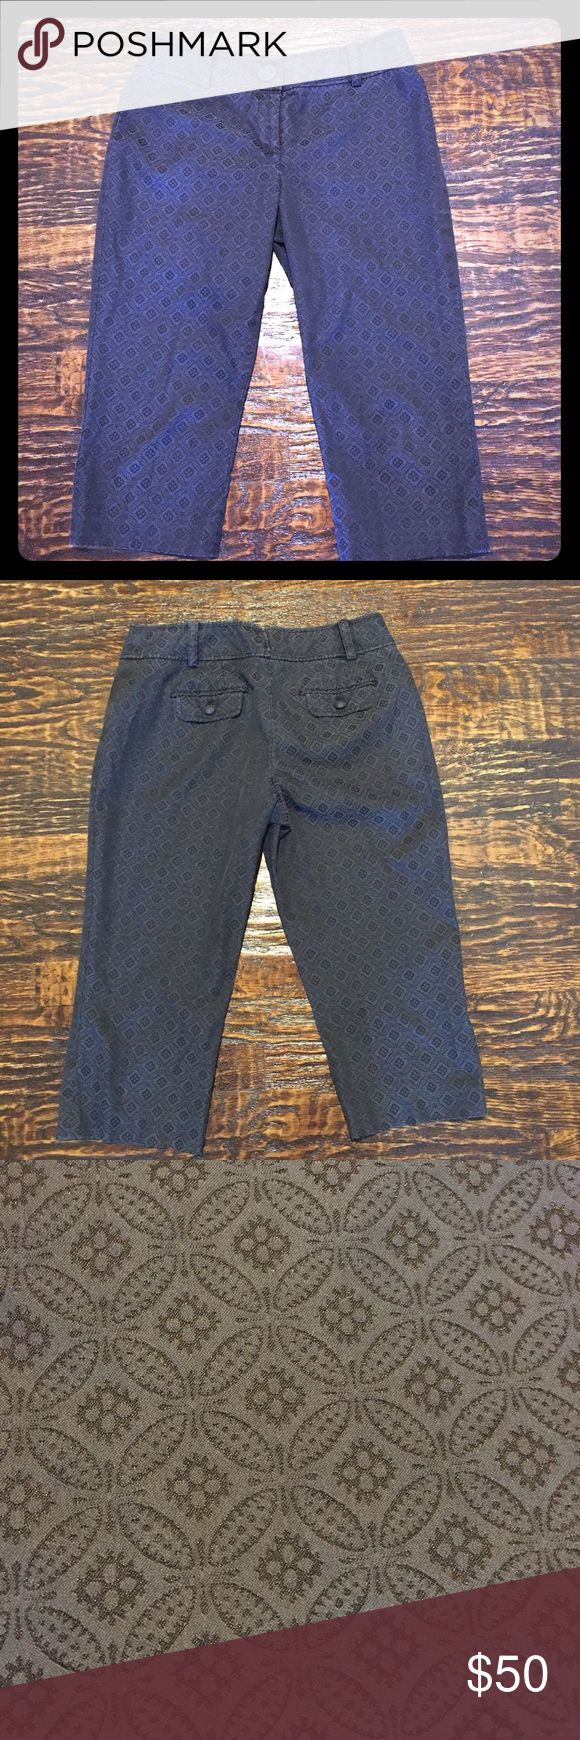 """Ann Taylor Petite Margo Jacquard Capris Great jacquard pattern in very dark grey background with subtle black circle designs. Darts on back side for a more flattering fit. Back pockets with fabric covered buttons. Gently worn. Good condition. 58% Cotton, 39% Polyester, 3% Spandex.   Approximate Measurements (unstretched):  Waist - 30"""" Lower hips - 37"""" Rise - 9.25"""" Inseam- 18"""" Ann Taylor Pants Capris"""